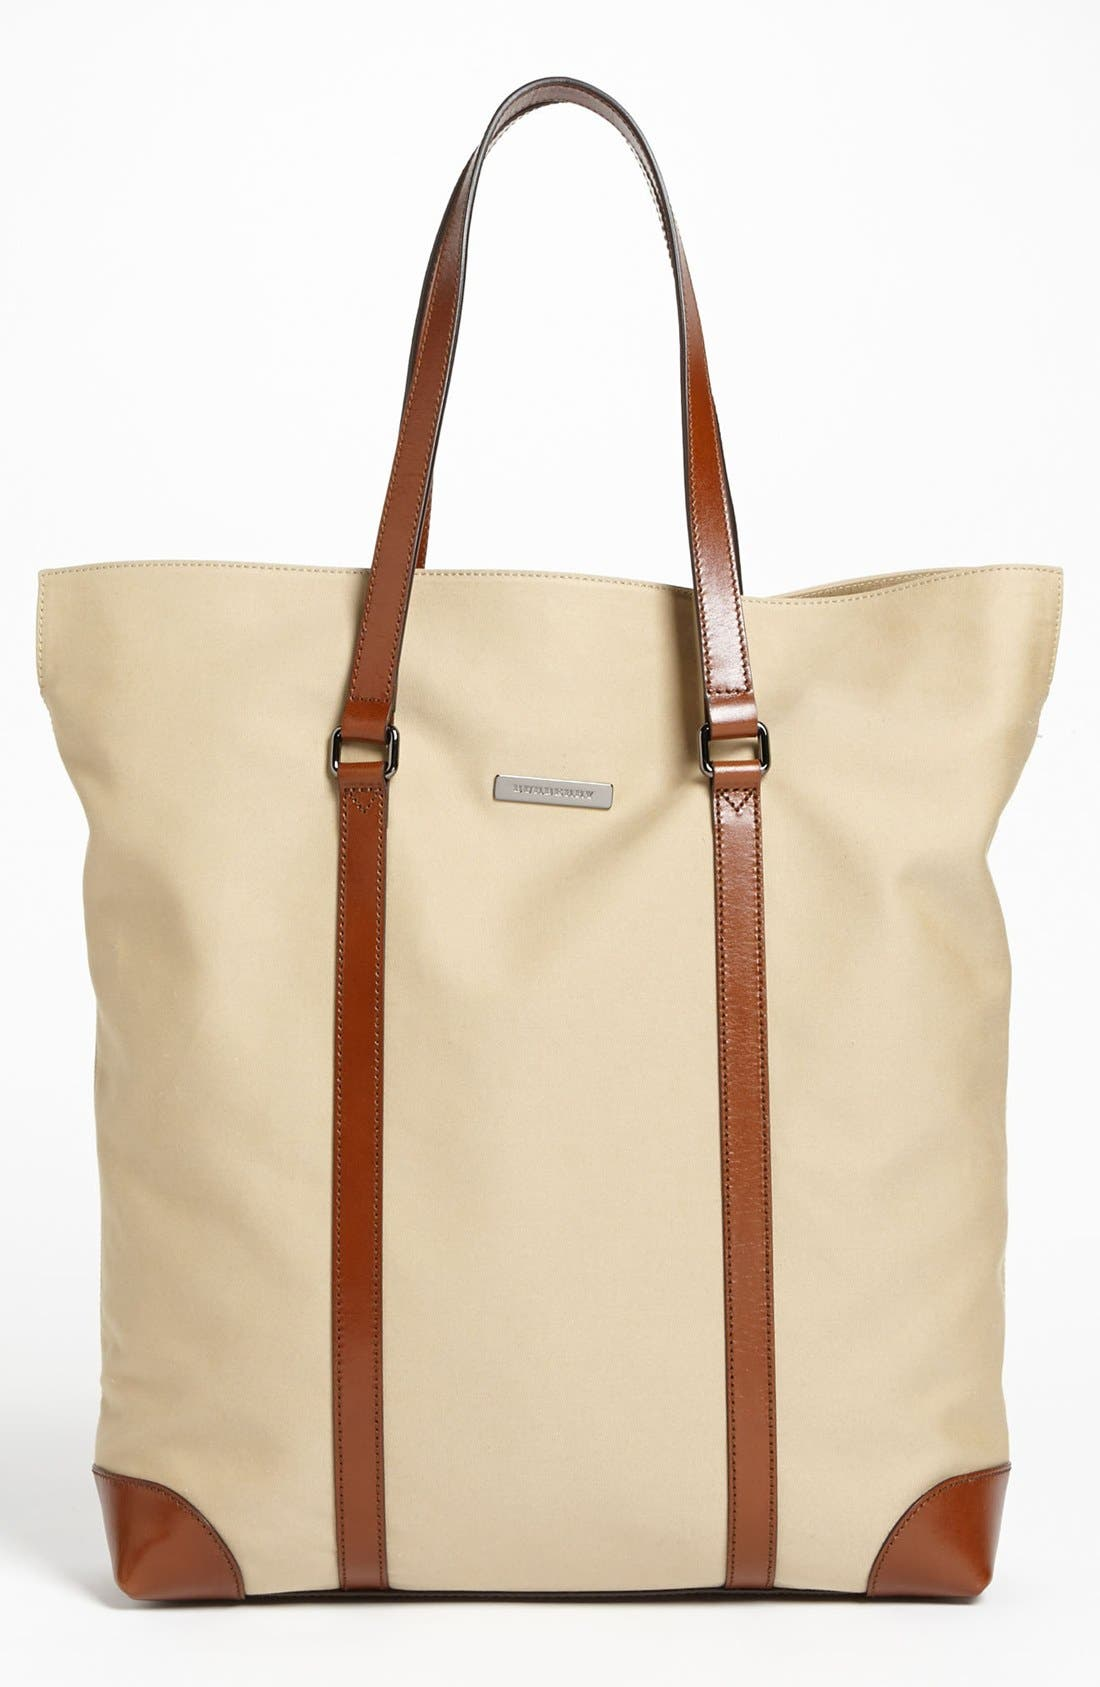 Main Image - Burberry 'Chesson' Tote Bag